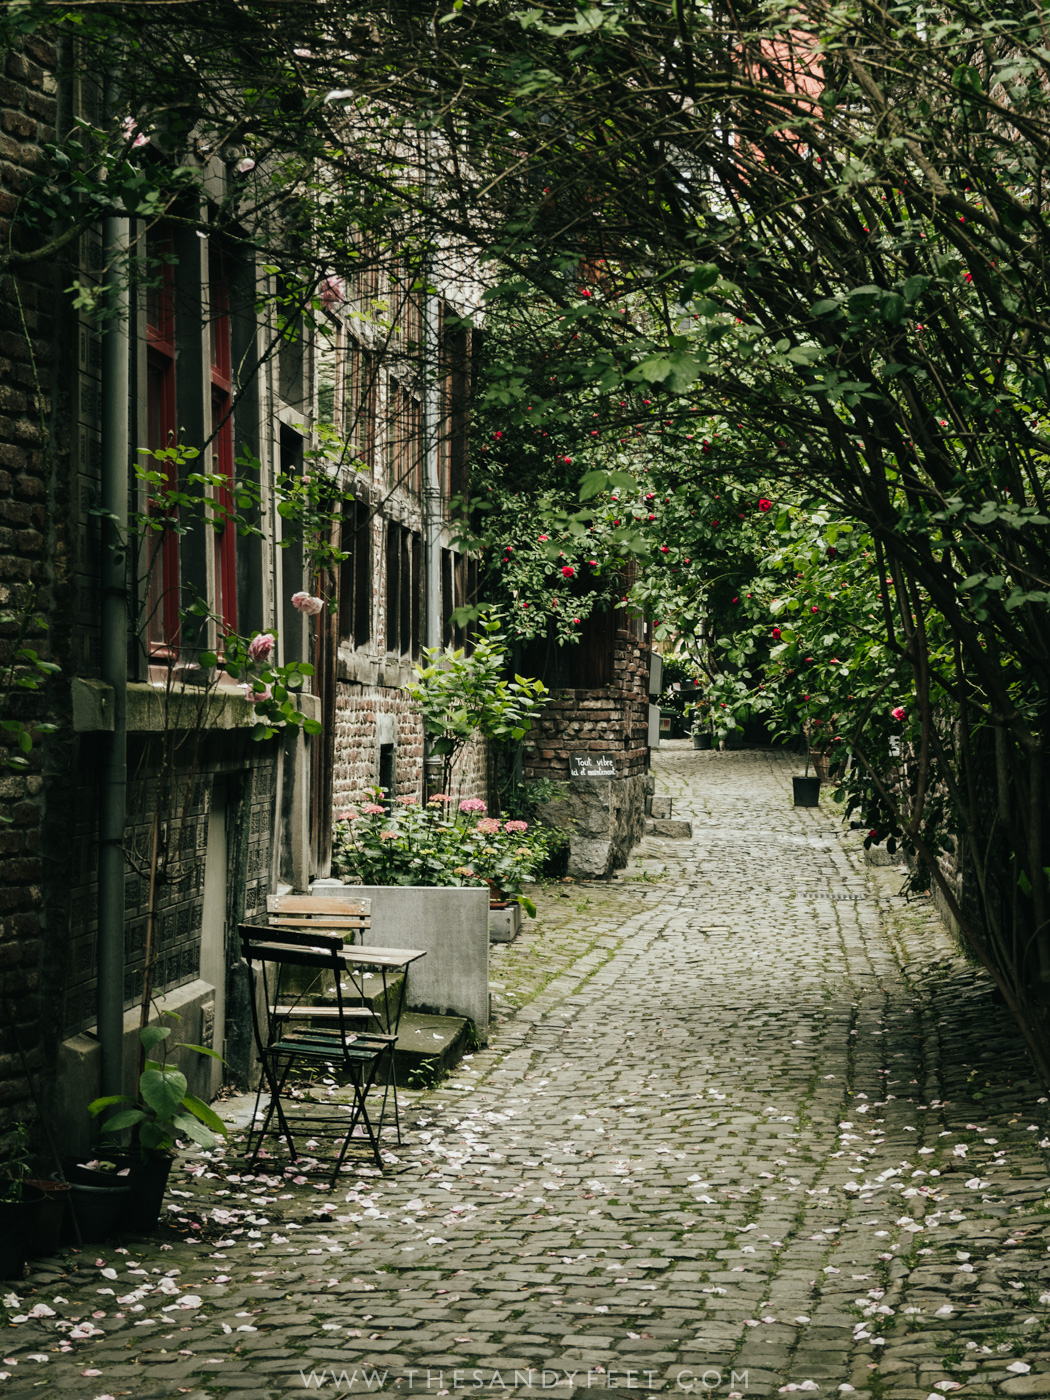 Exploring the impasse of Liege | Top Things To Do In Liege in Belgium's Wallonia Region.